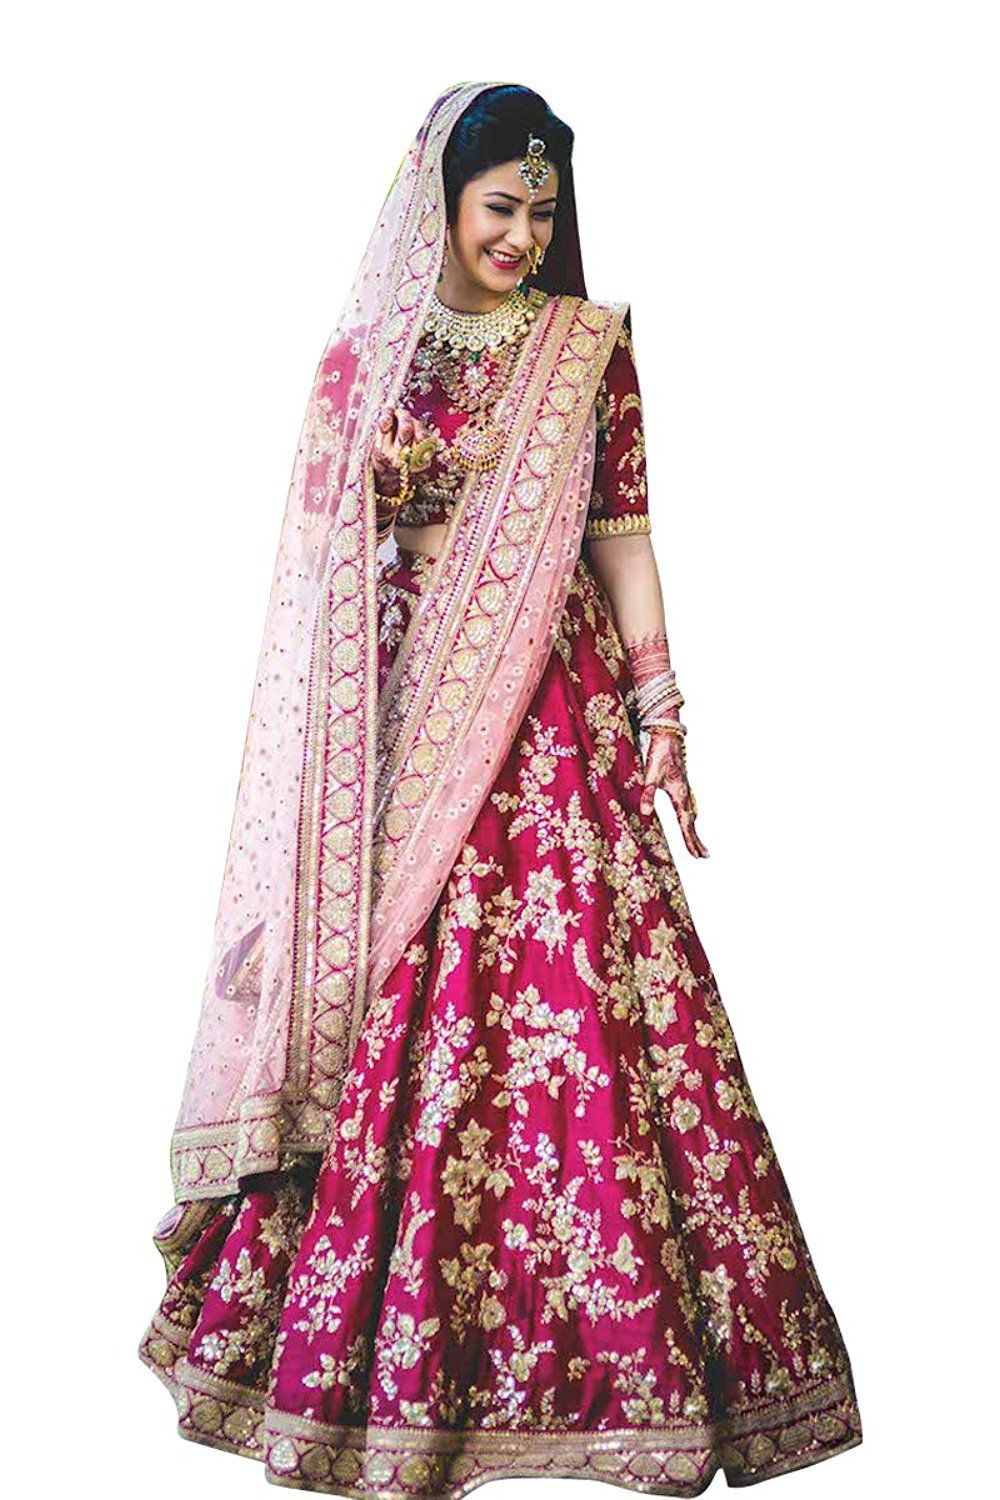 27c42fda79bb Fabron Bridal Semi Velvet Lehenga Choli With Heavy Lace Work On Dupatta   Amazon.in  Clothing   Accessories